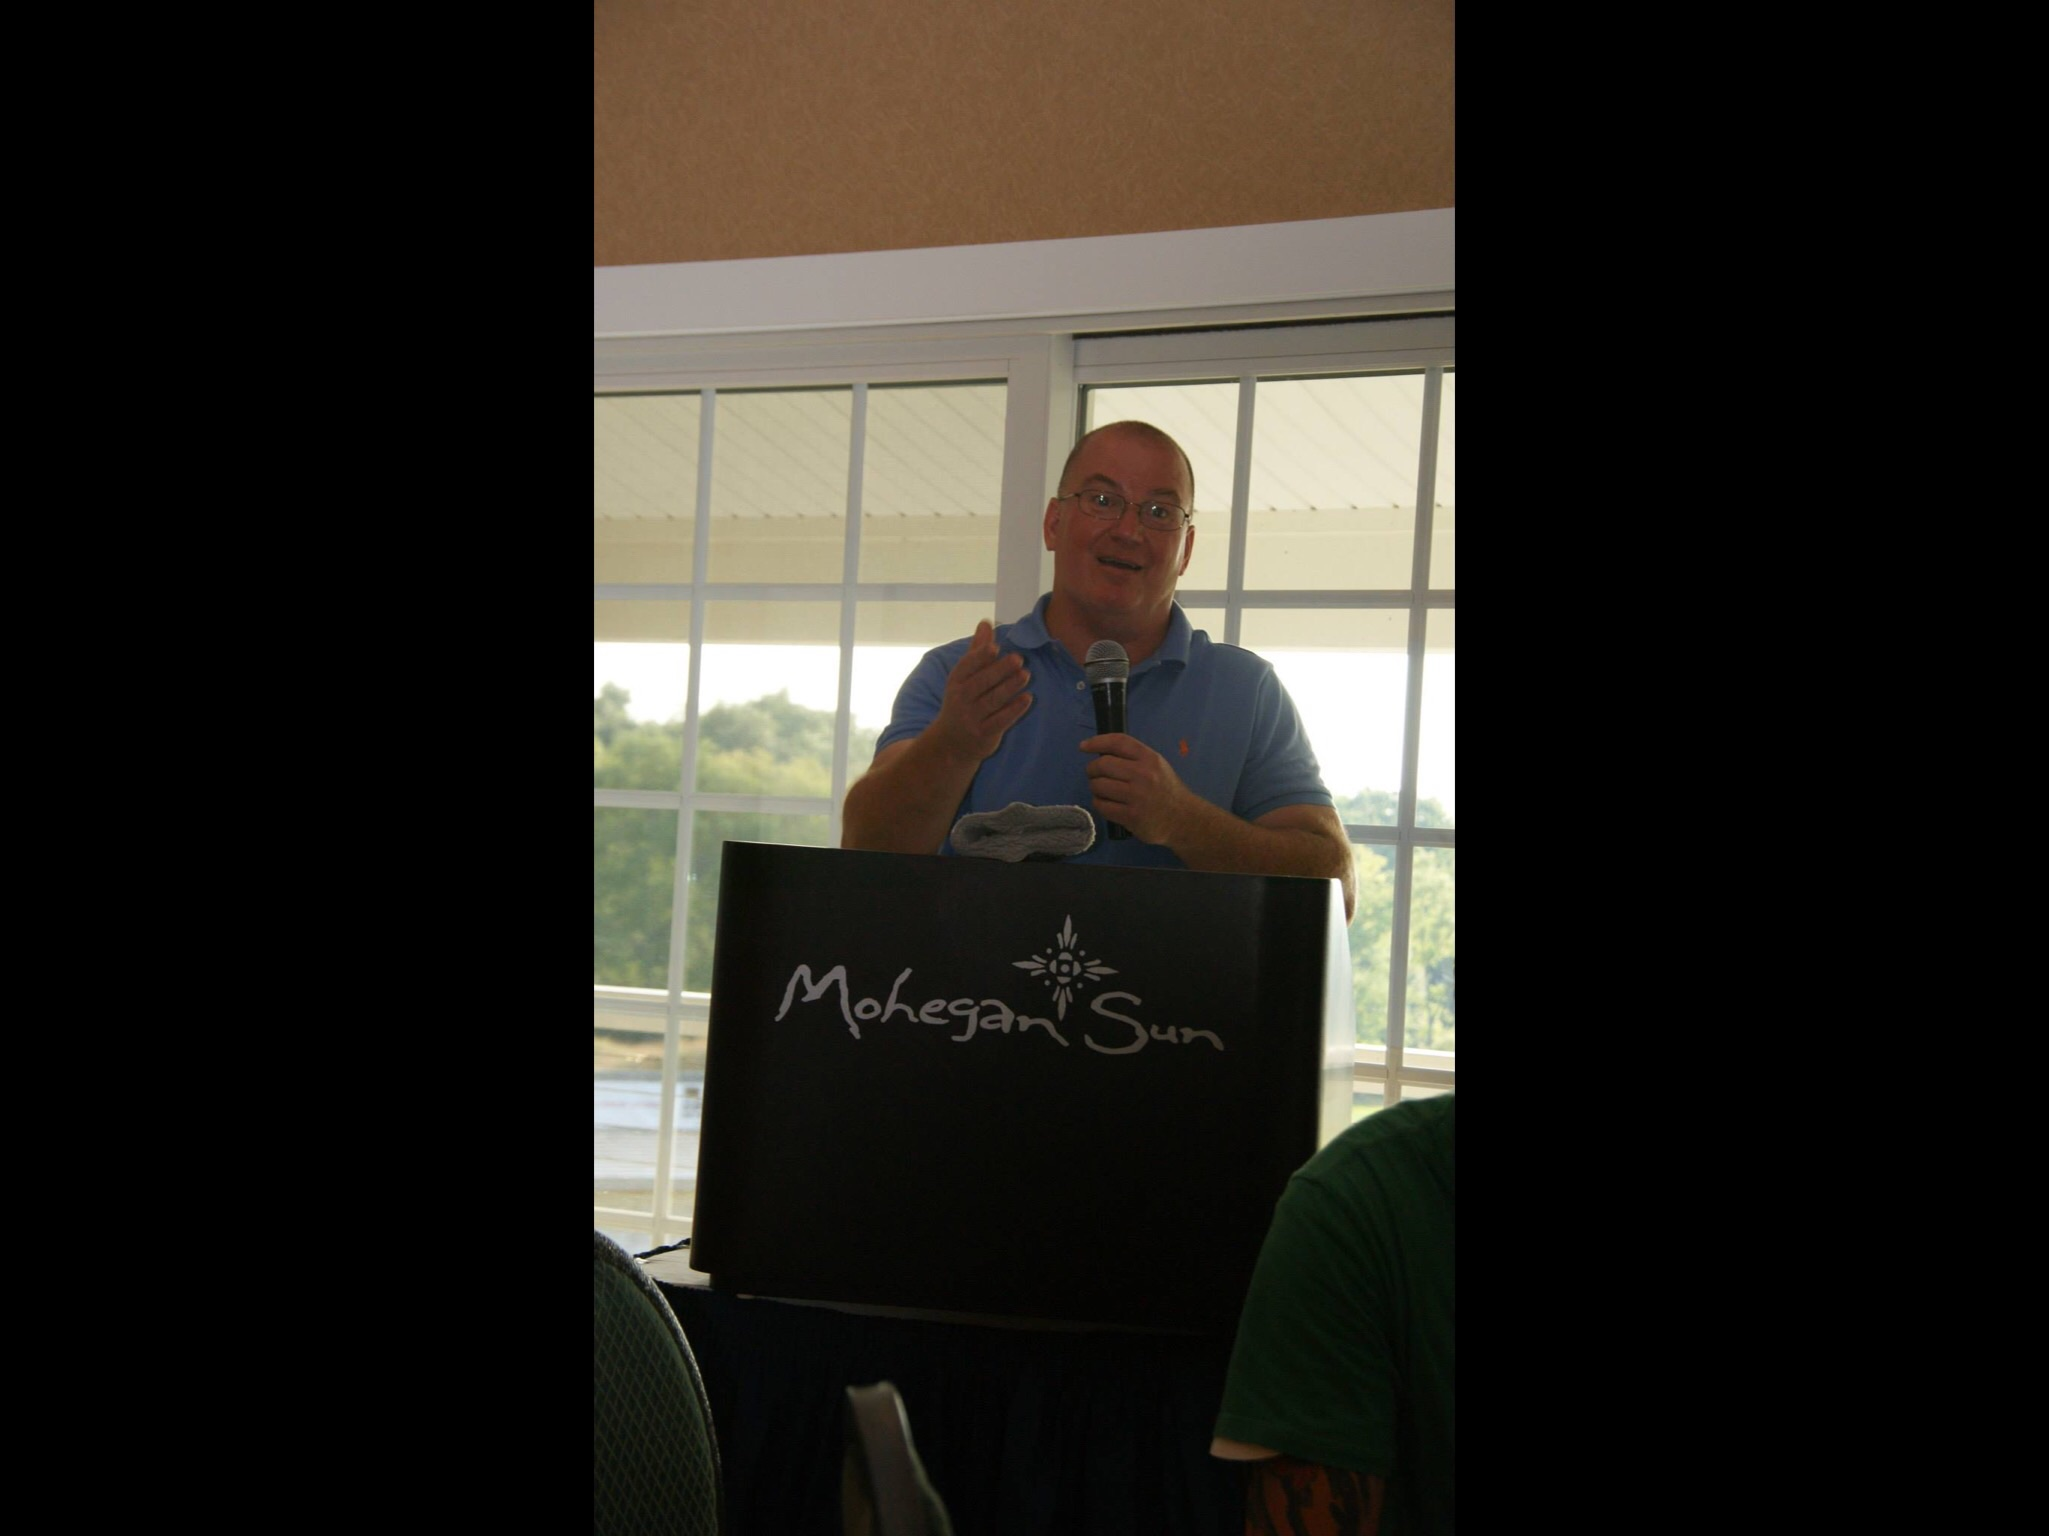 Steve speaking about the Kids Camp at the annual golf tournament